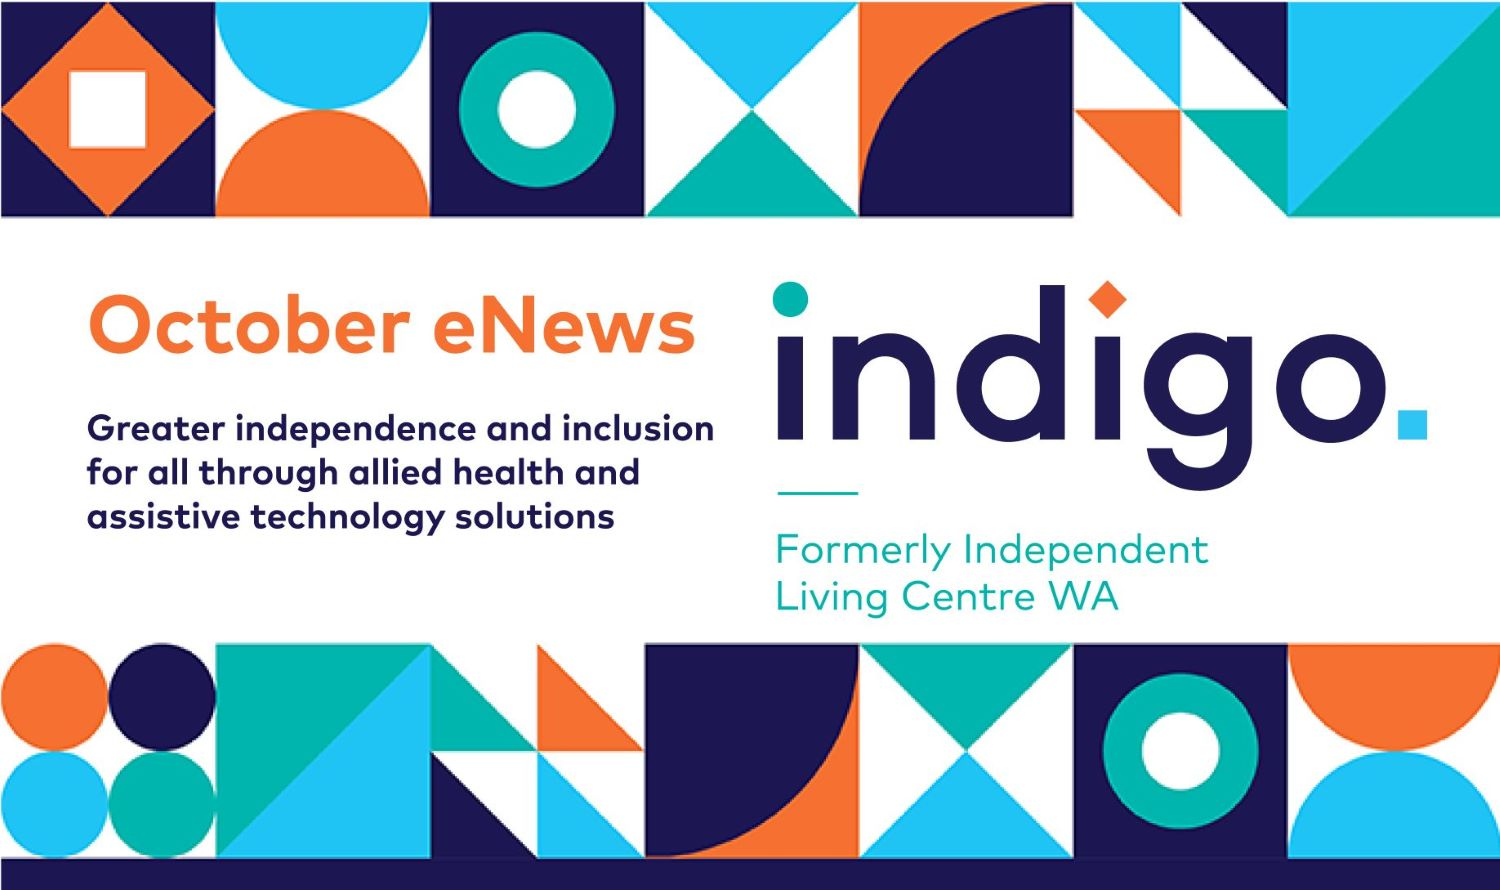 October eNews banner with Indigo graphics